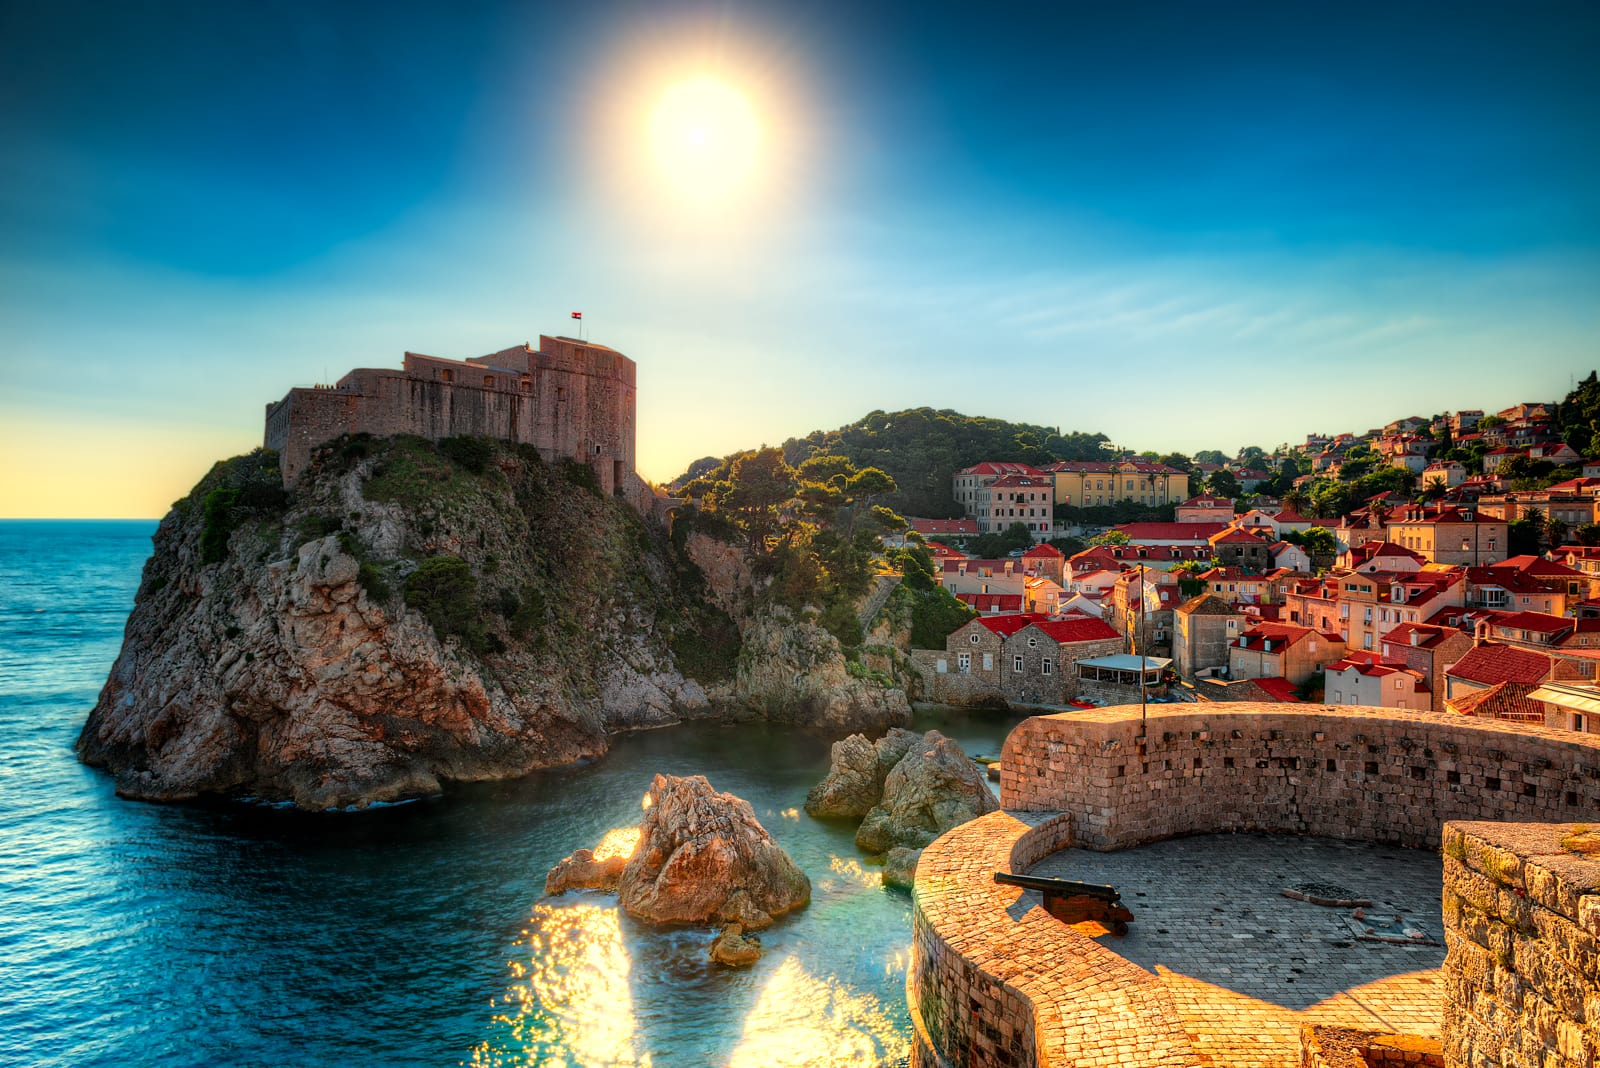 Town Walls and King's Landing in Dubrovnik, Croatia